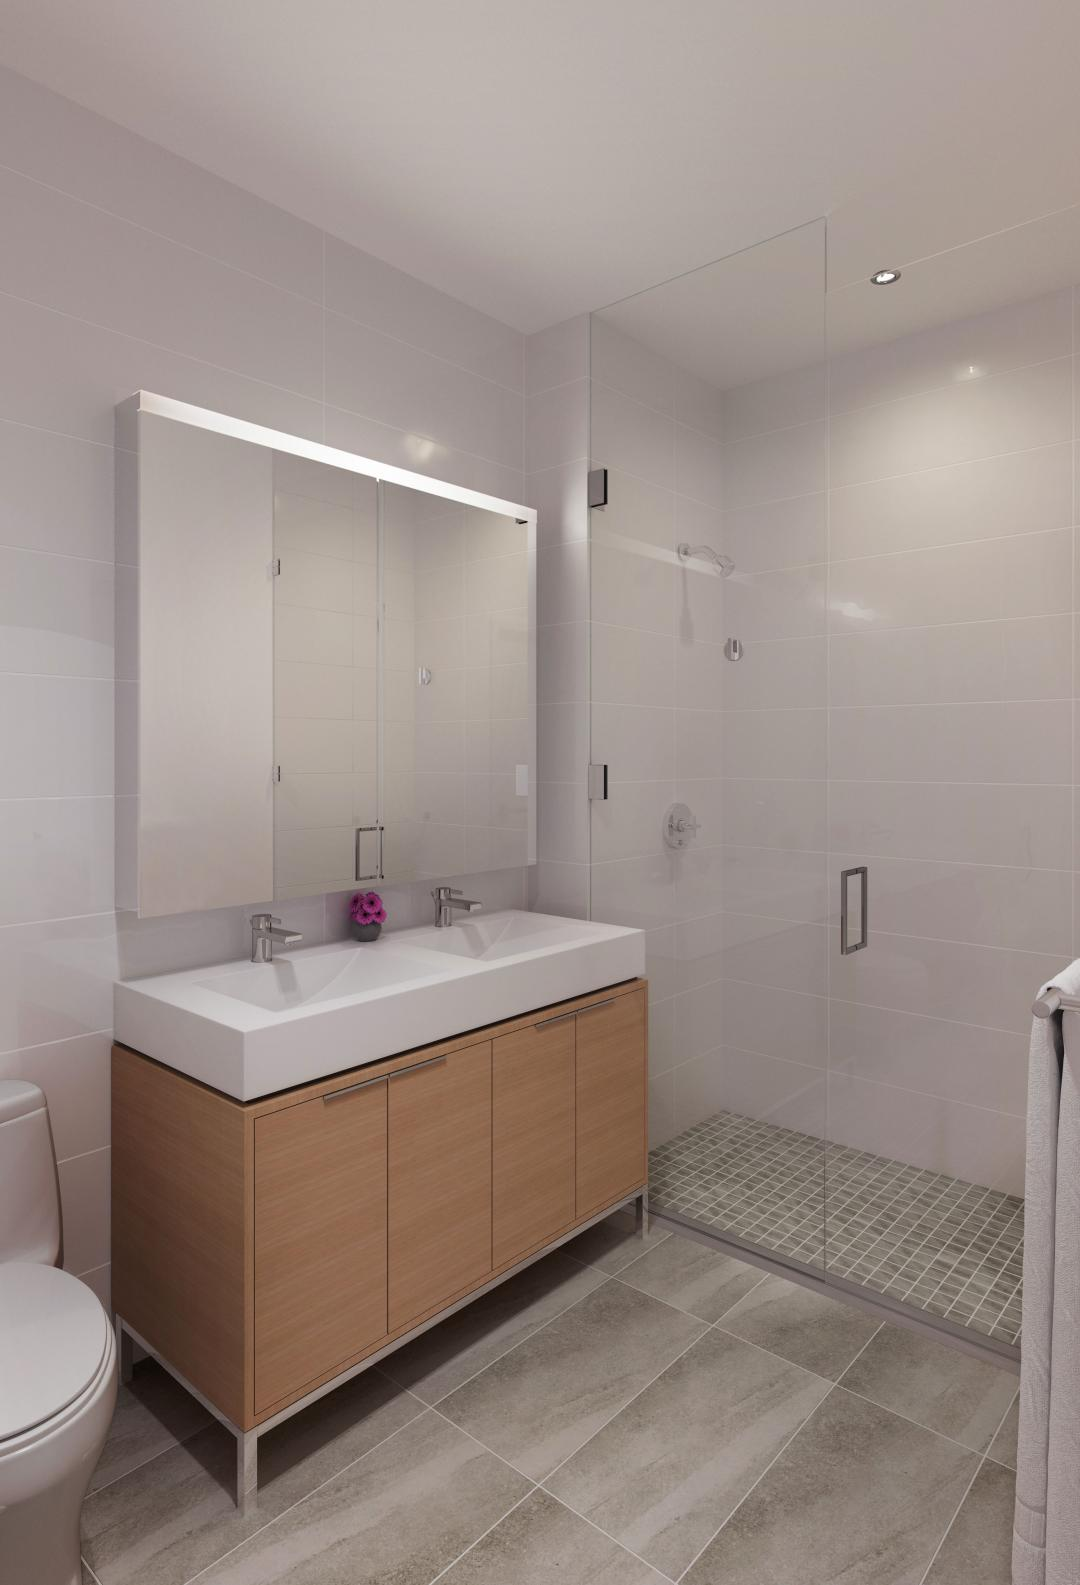 Rentals at 180 Water Street in Manhattan - Bathroom